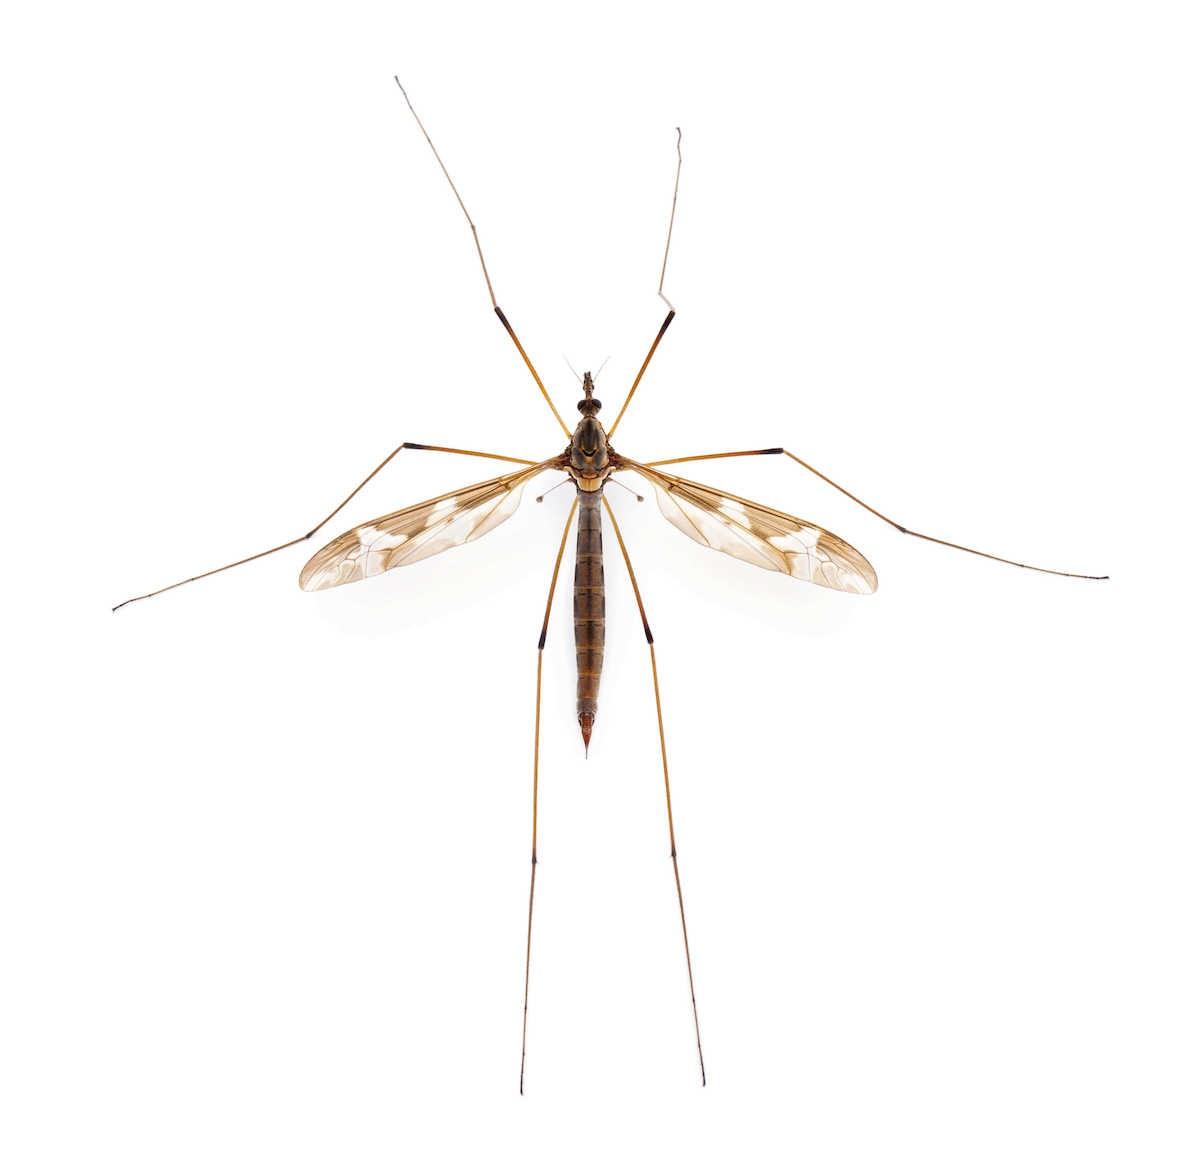 Crane fly with long legs on a white background